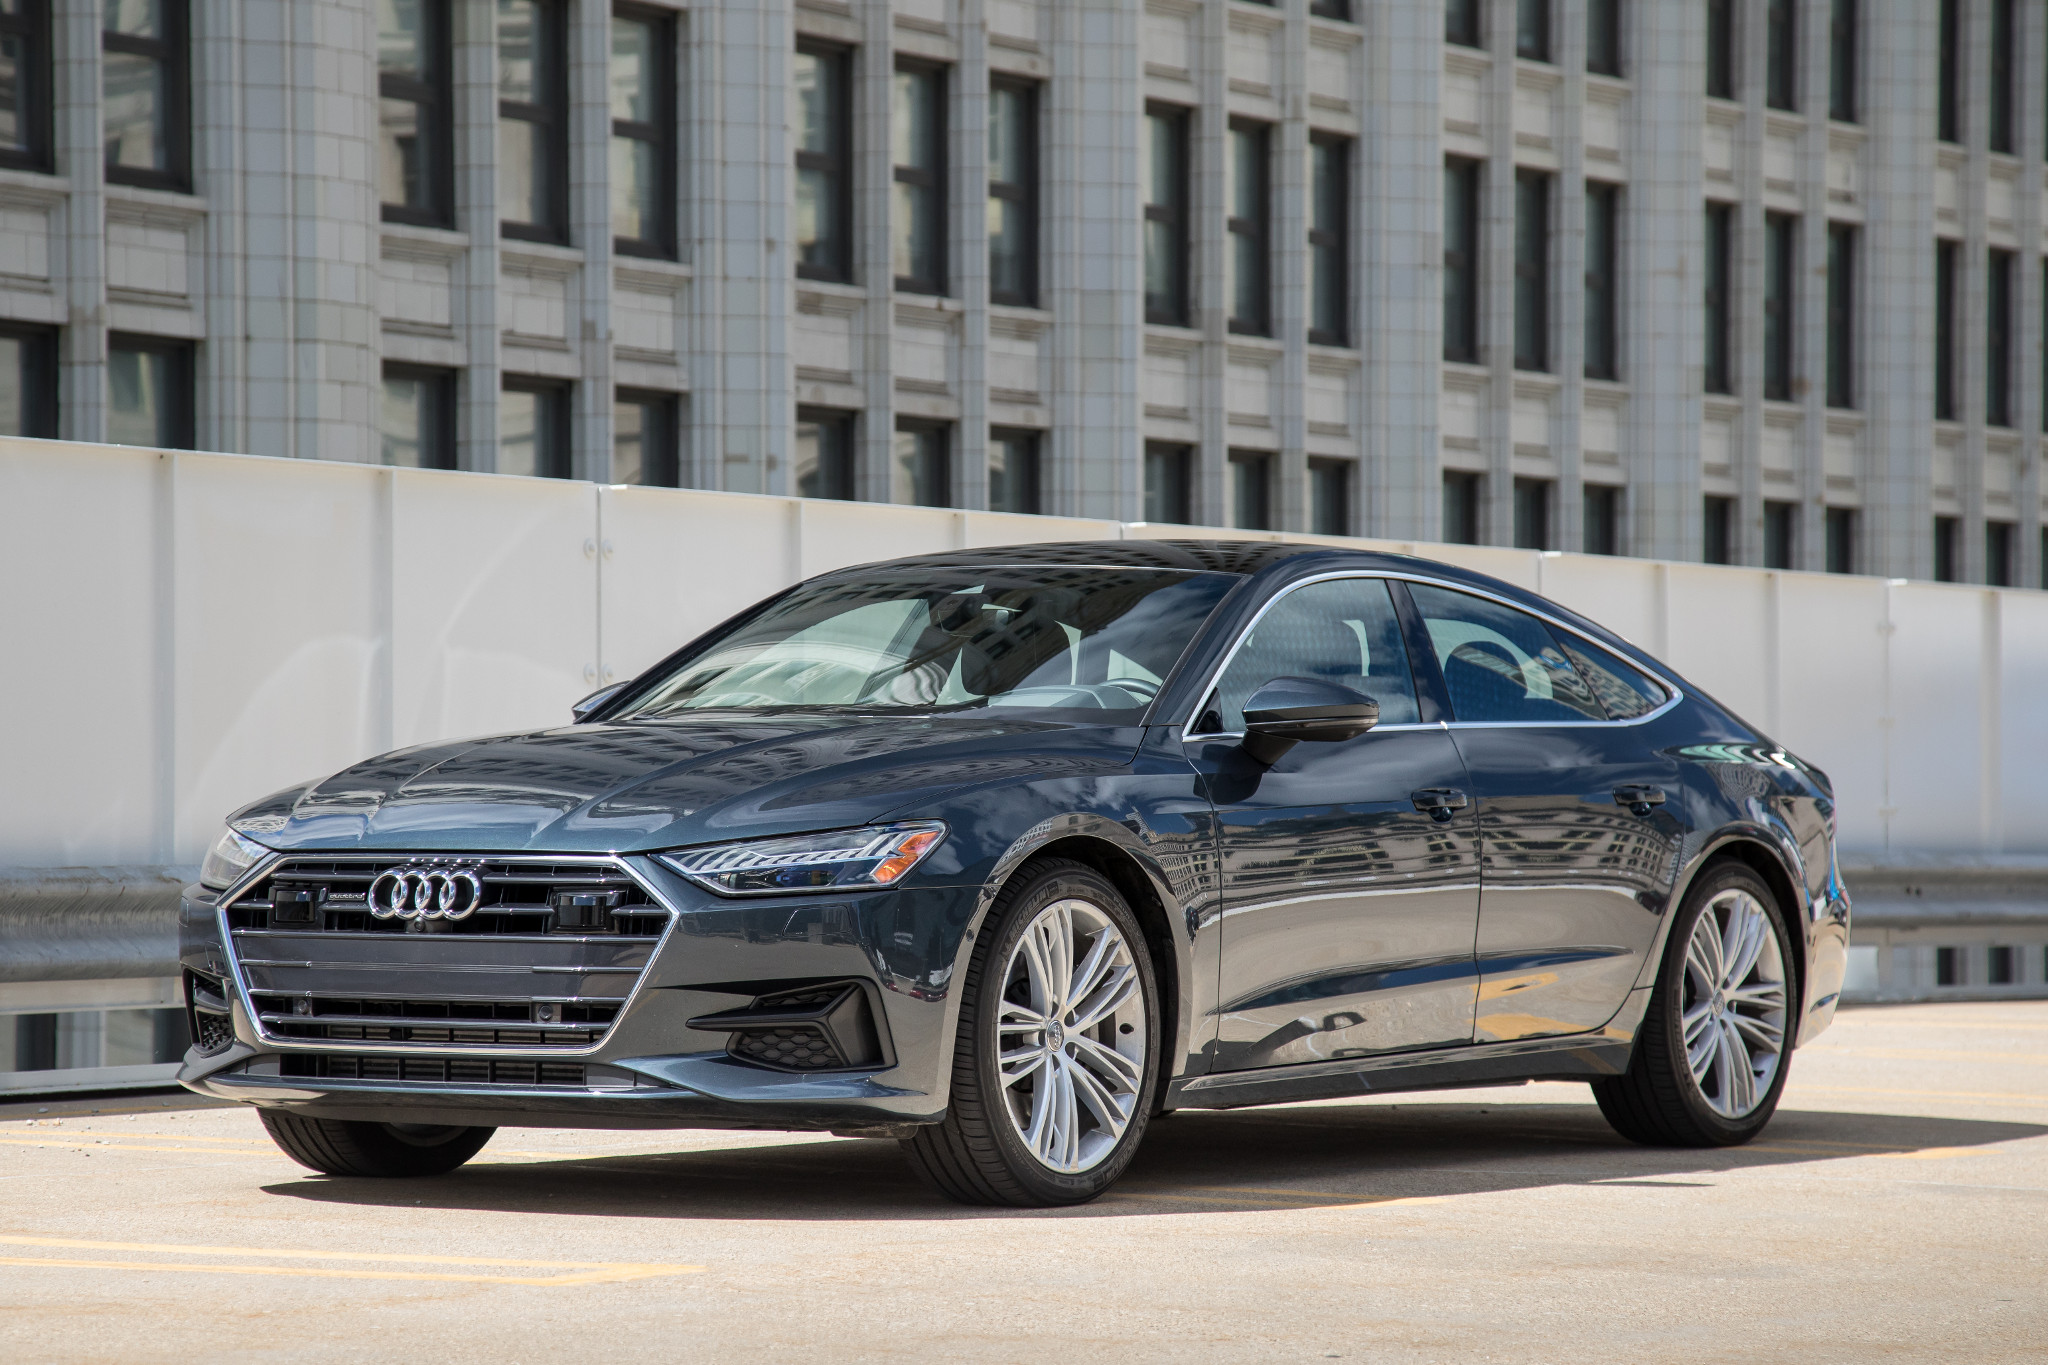 2019 Audi A7: 6 Things We Like, 3 Things We Don't | News ...